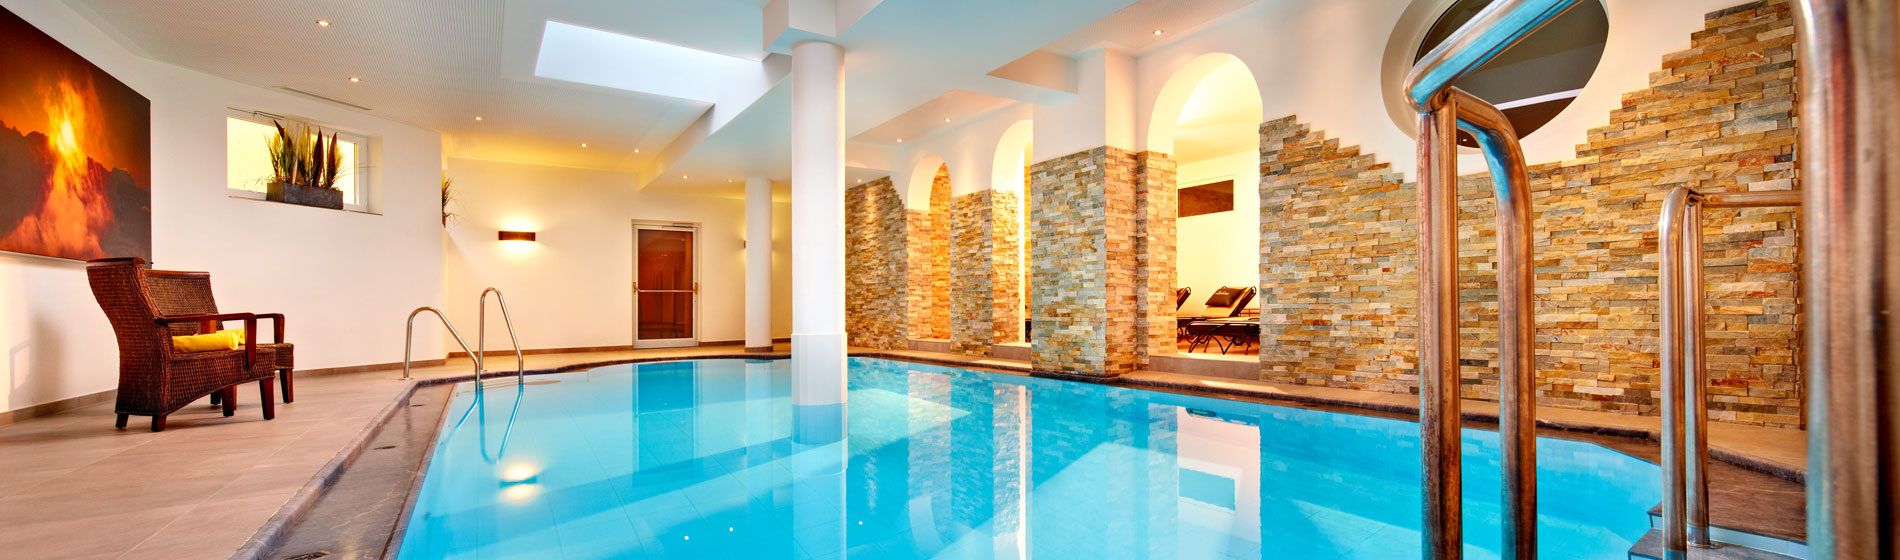 Indoor pool in a hotel